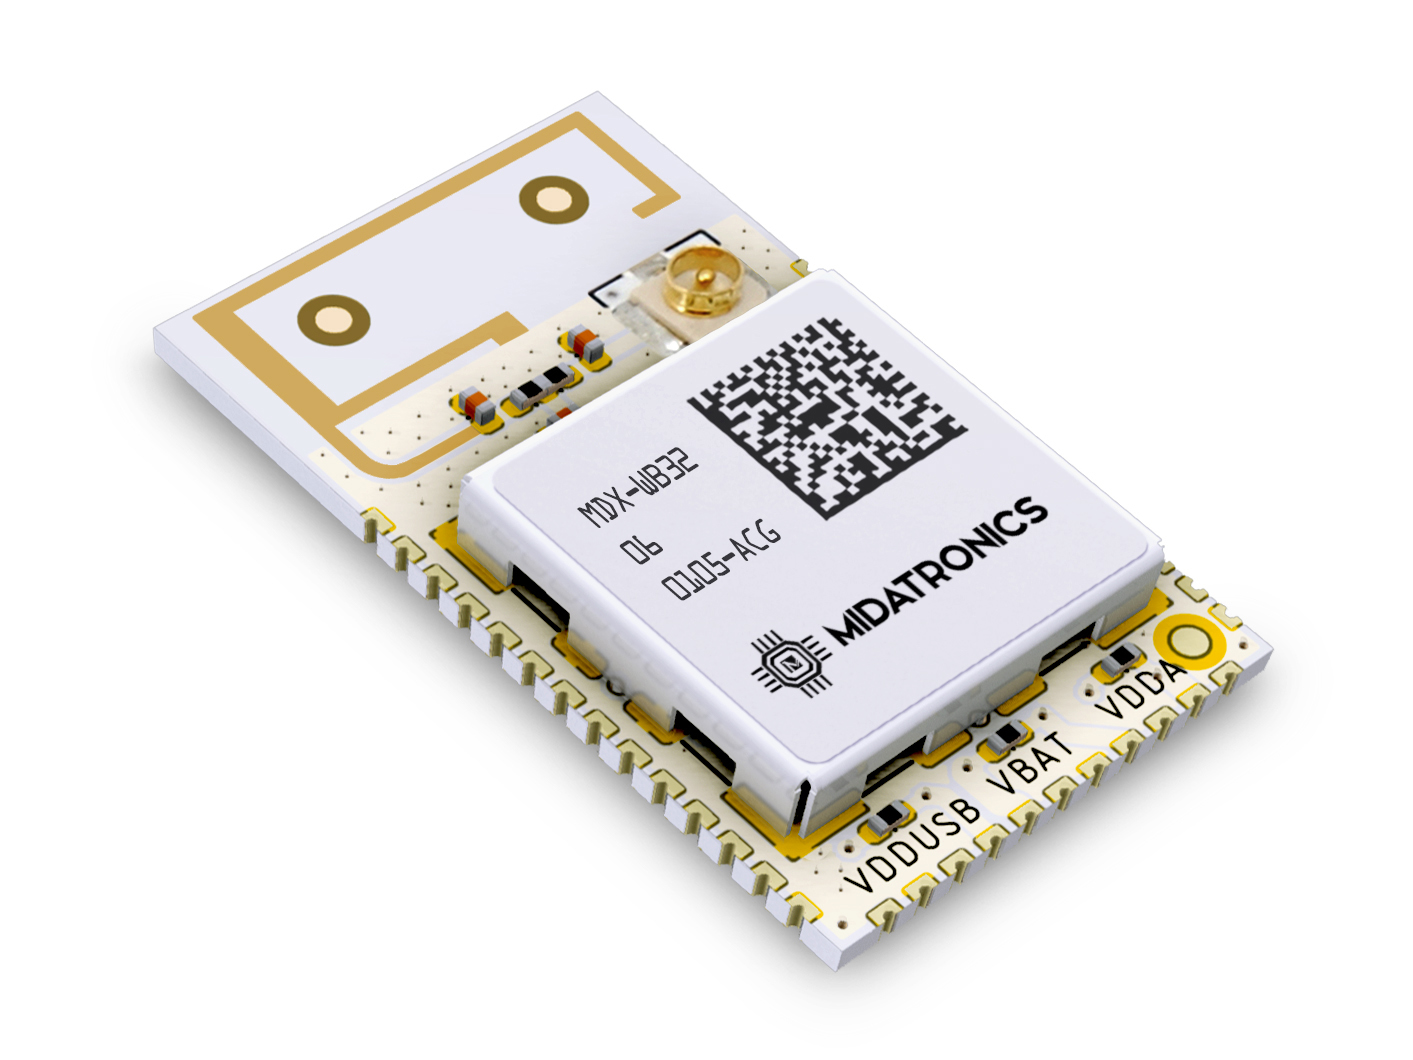 Next-generation IoT wireless modules accelerate development, says Arrow